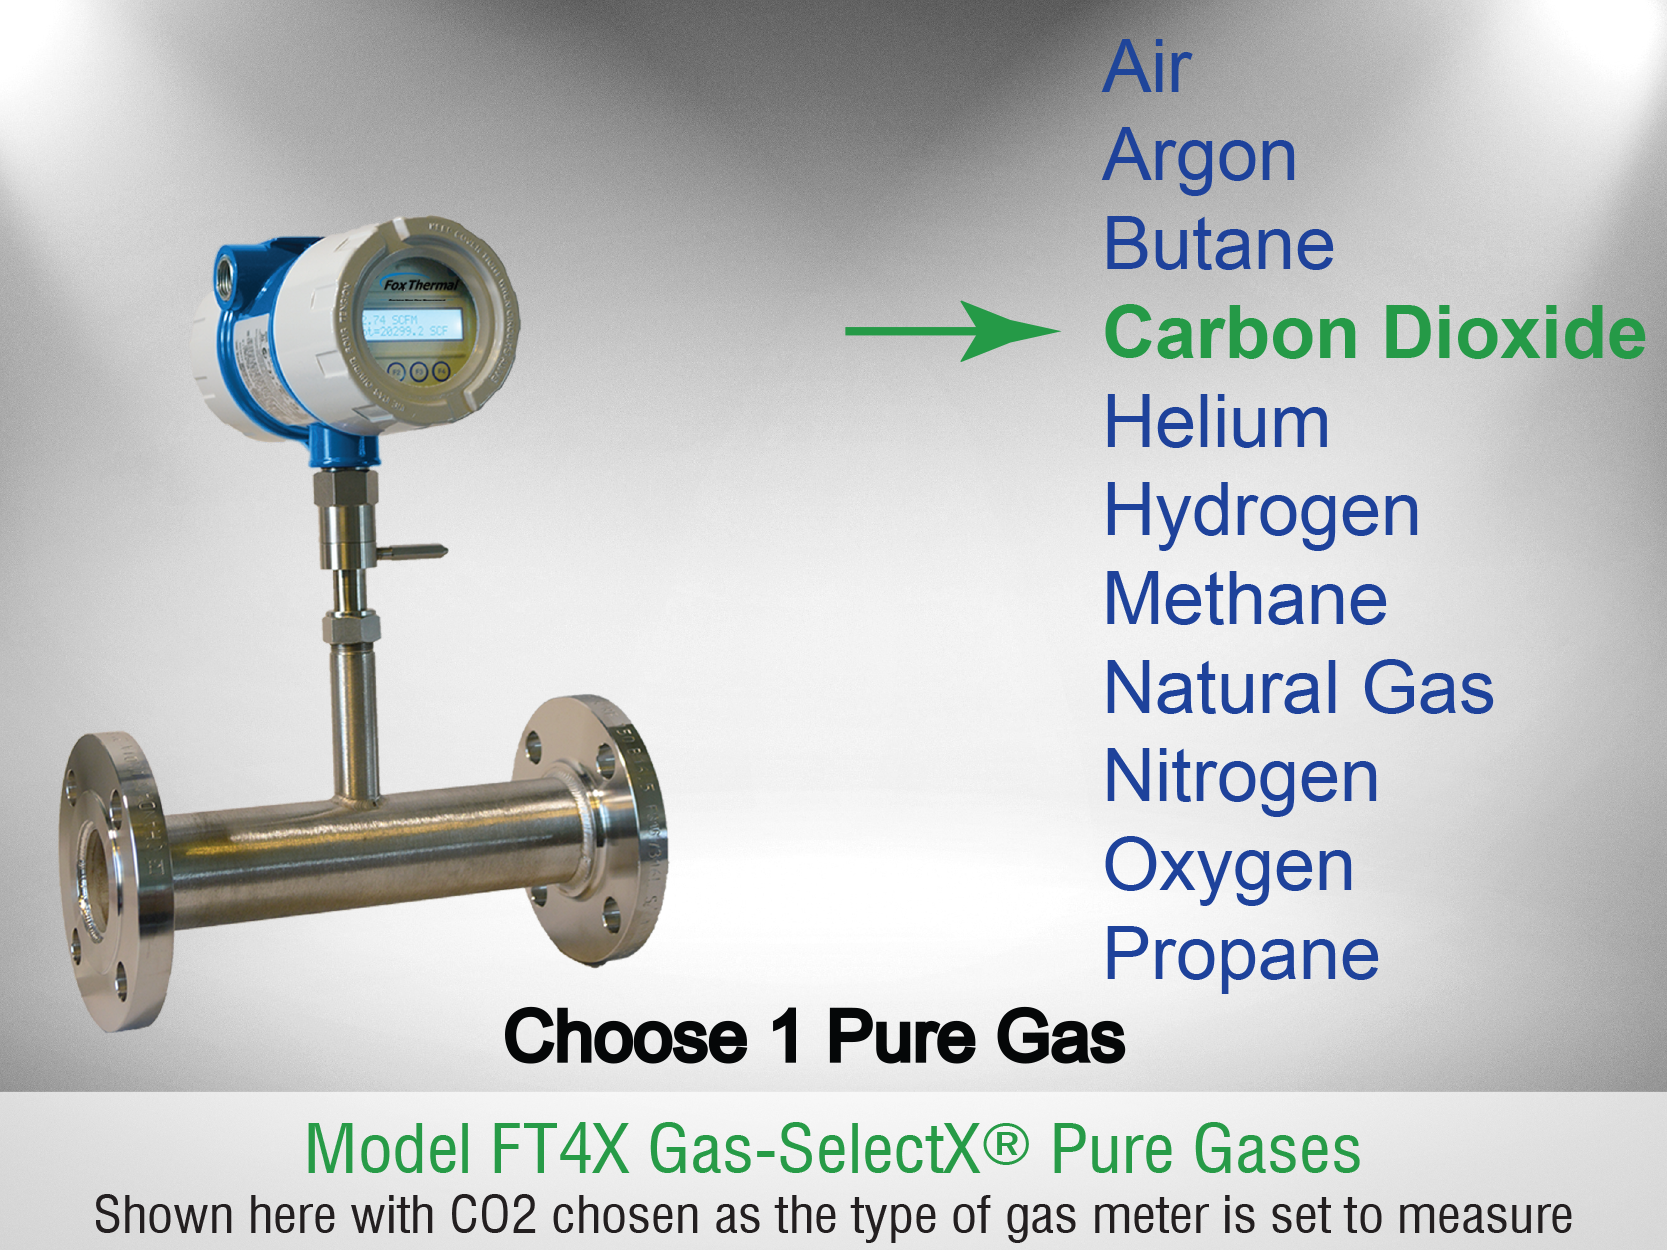 Gas-SelectX® with Pure Gas Menu